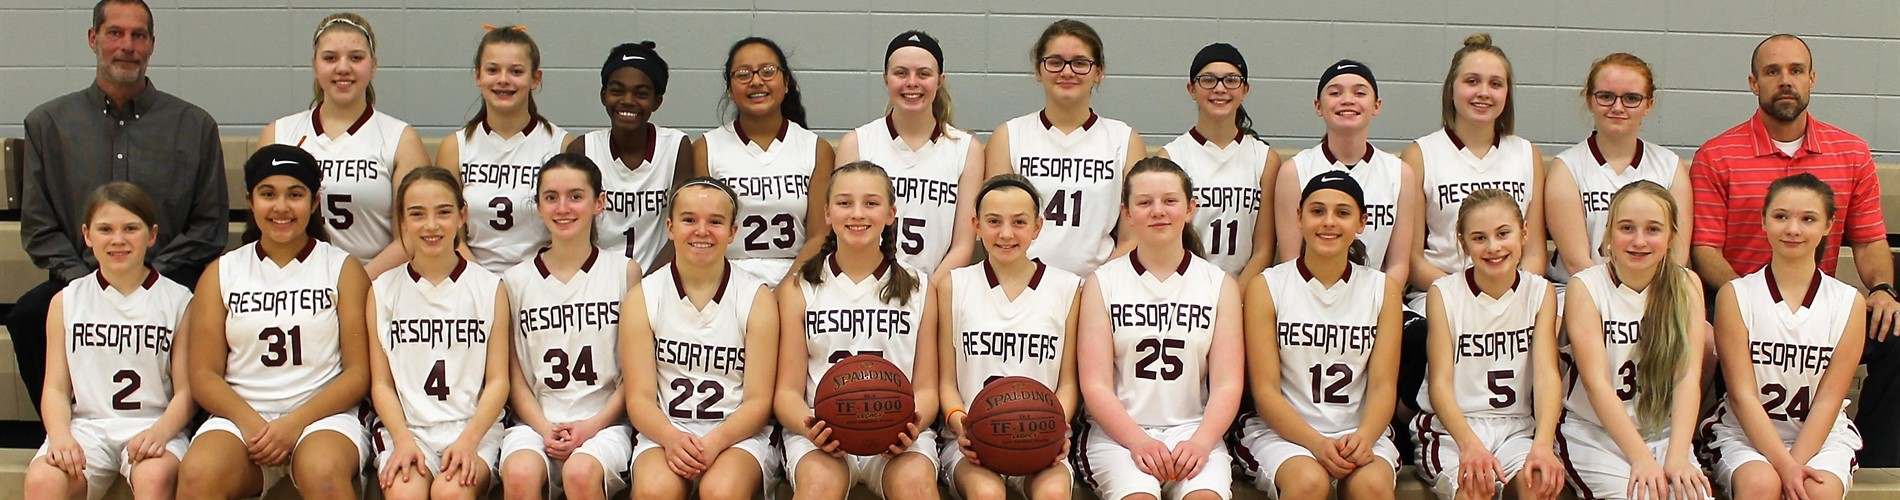 2018 MS Girls Basketball Team